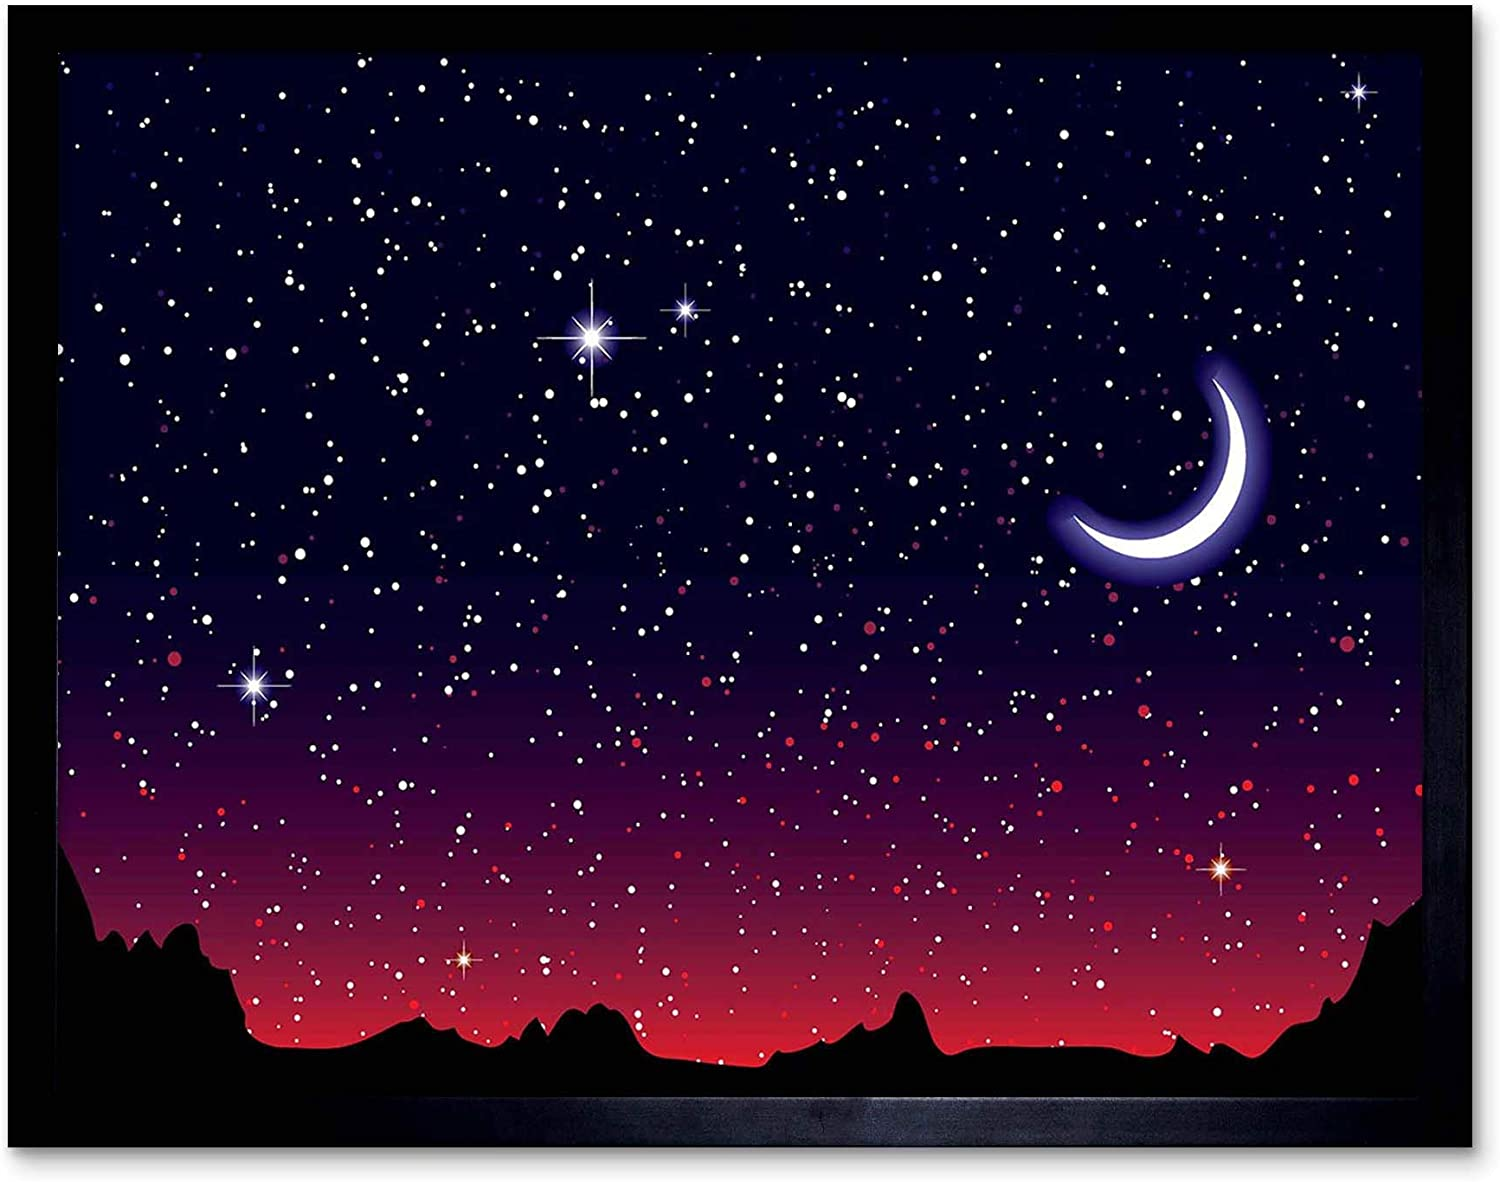 Wee Blue Coo Painting Illustration Starry Night Sky Crescent Moon Art Print Poster Wall Decor 12x16 Inch Amazon Co Uk Kitchen Home